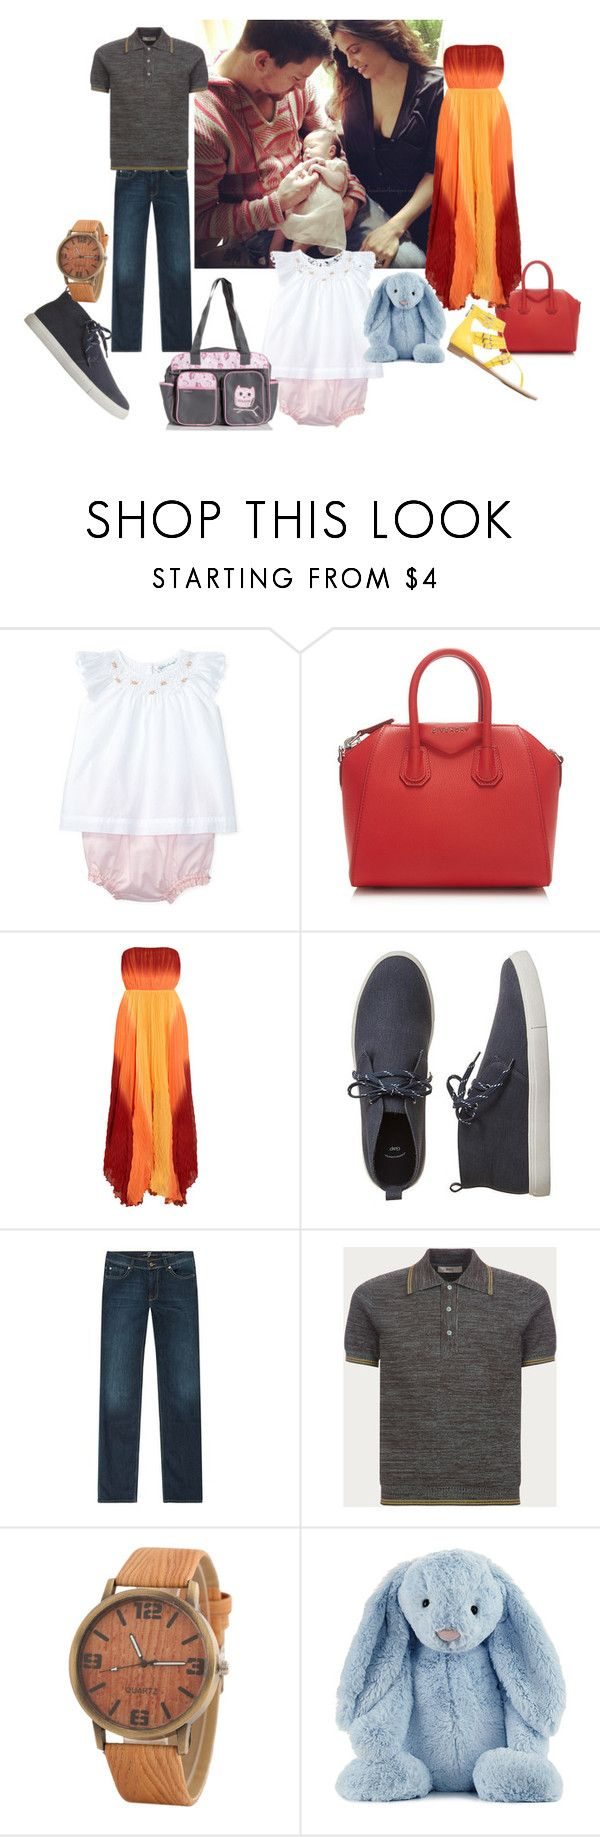 """""""Family Outing"""" by dramione-turbo ❤ liked on Polyvore featuring Ralph Lauren, Givenchy, Alice + Olivia, Gap, 7 For All Mankind, Bally and Jellycat"""